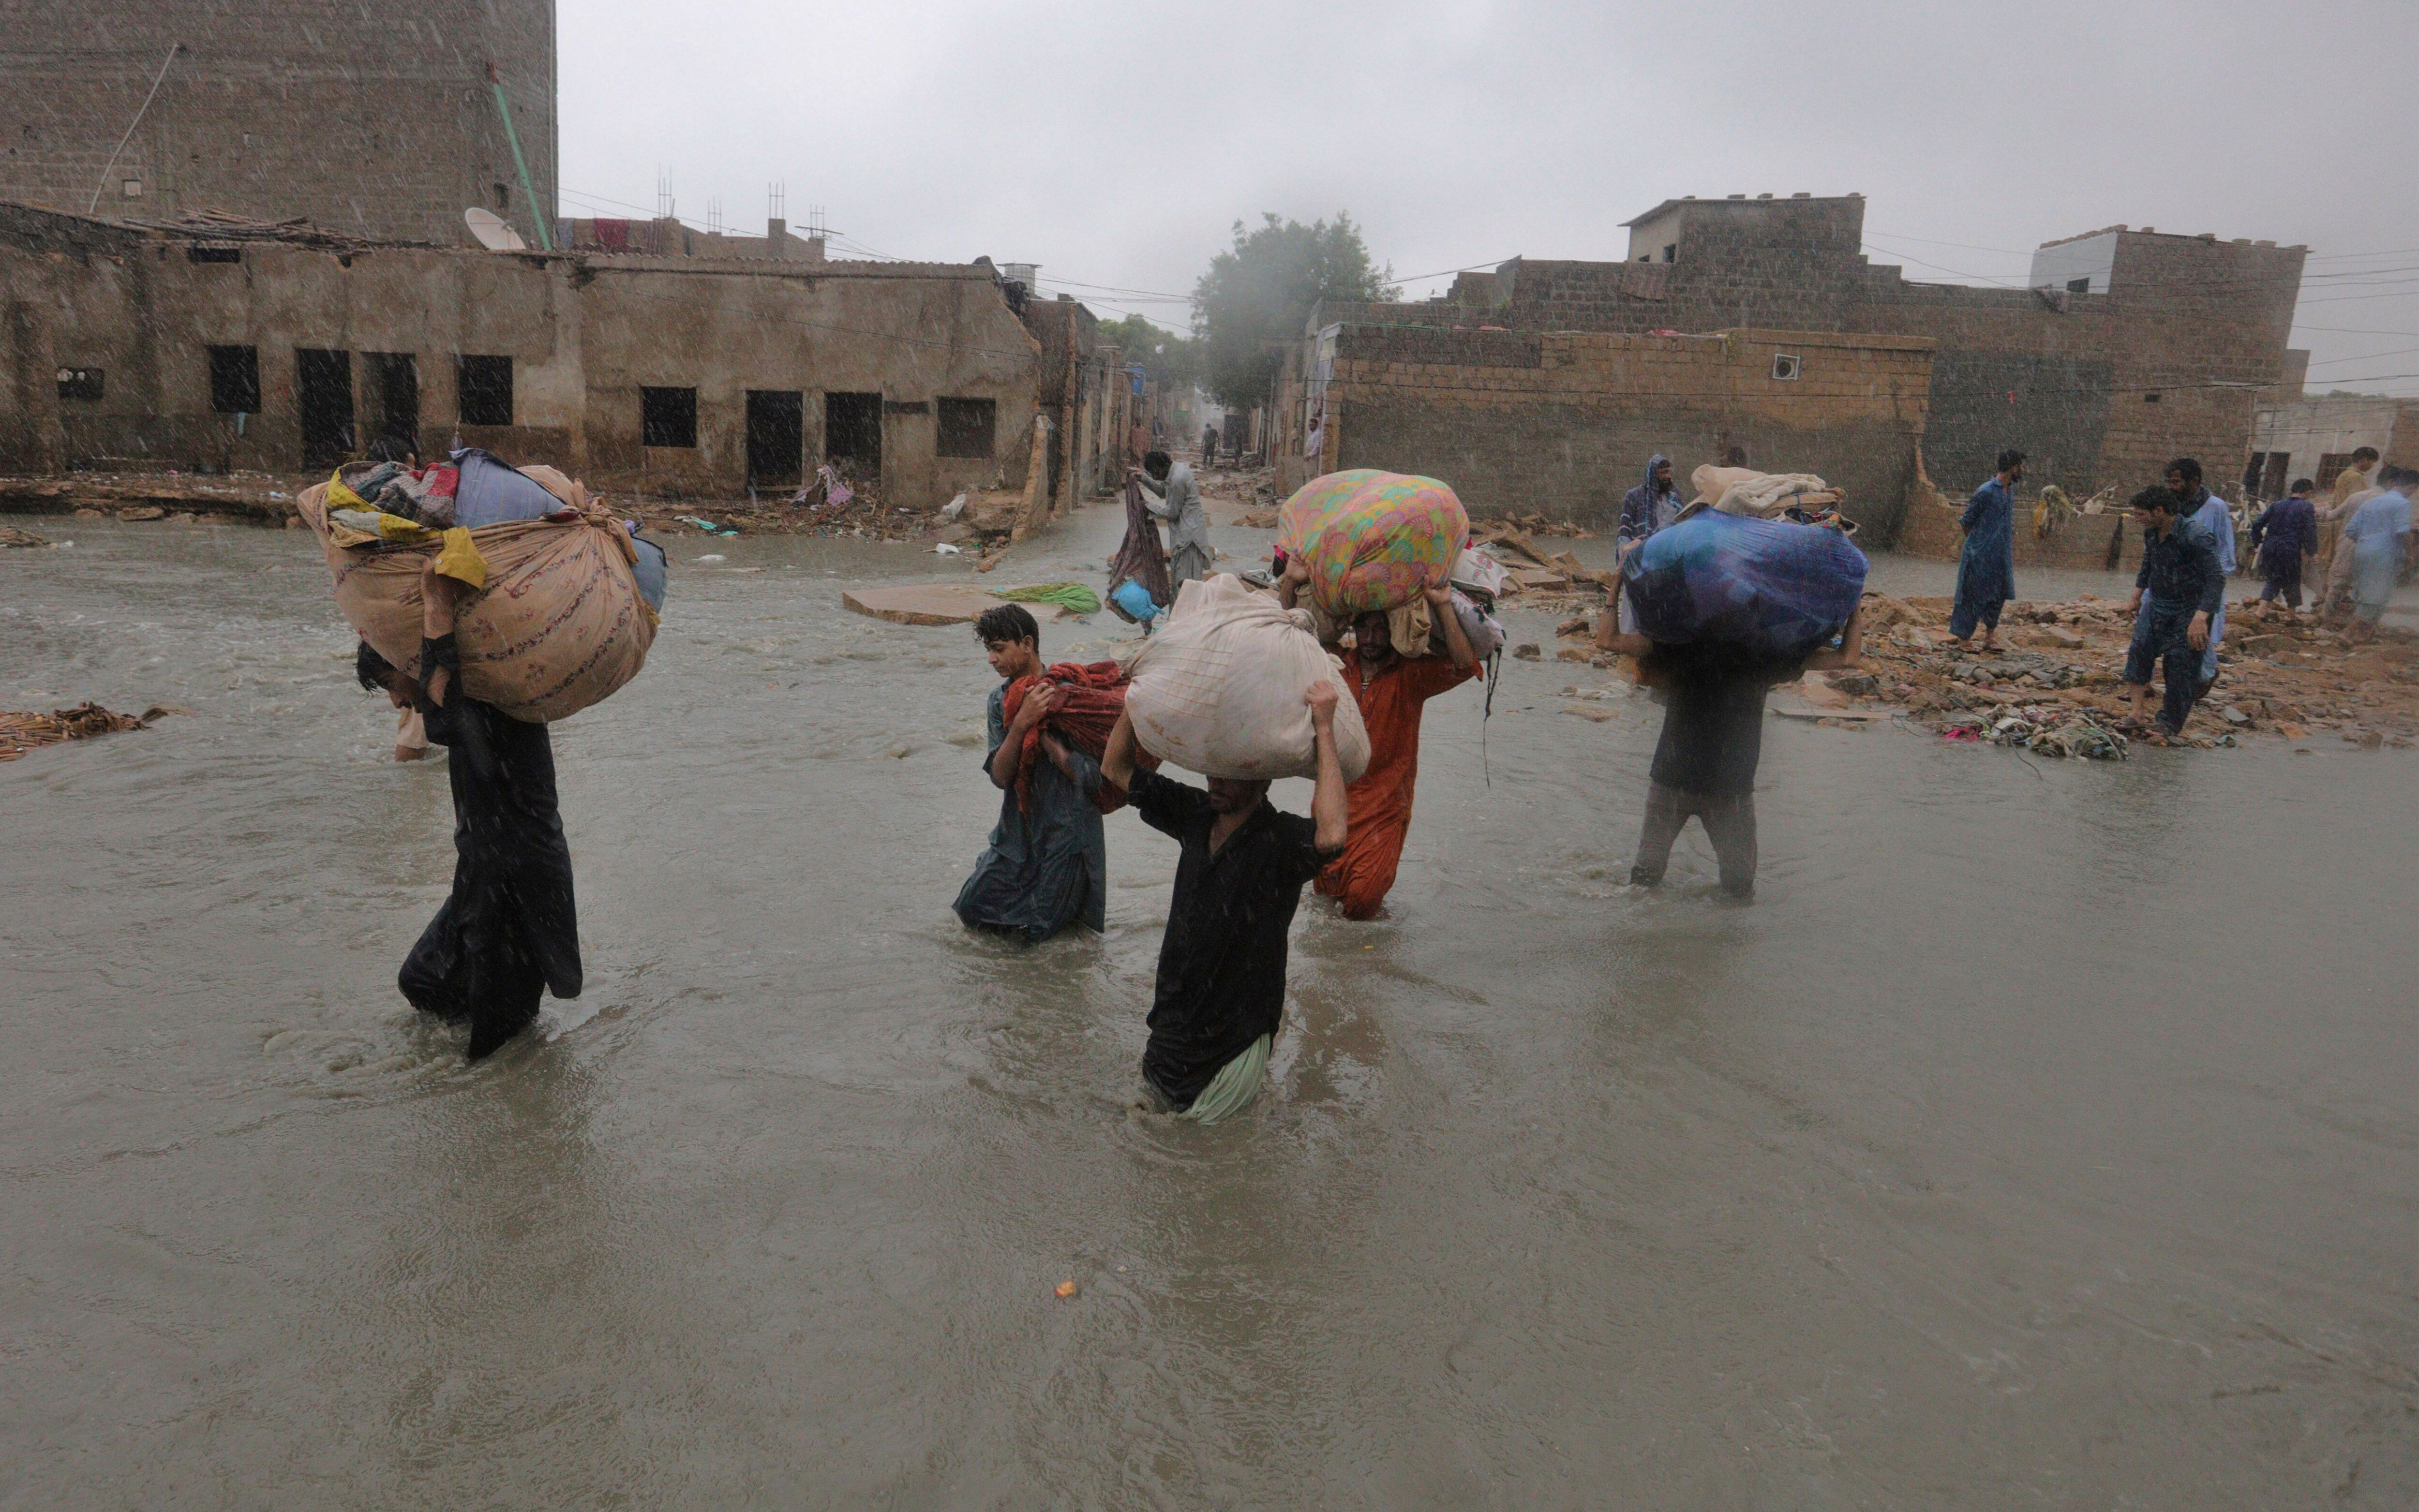 Local residents carry salvaged belongings as they wade through a flooded area during a heavy monsoon rain in Yar Mohammad vil